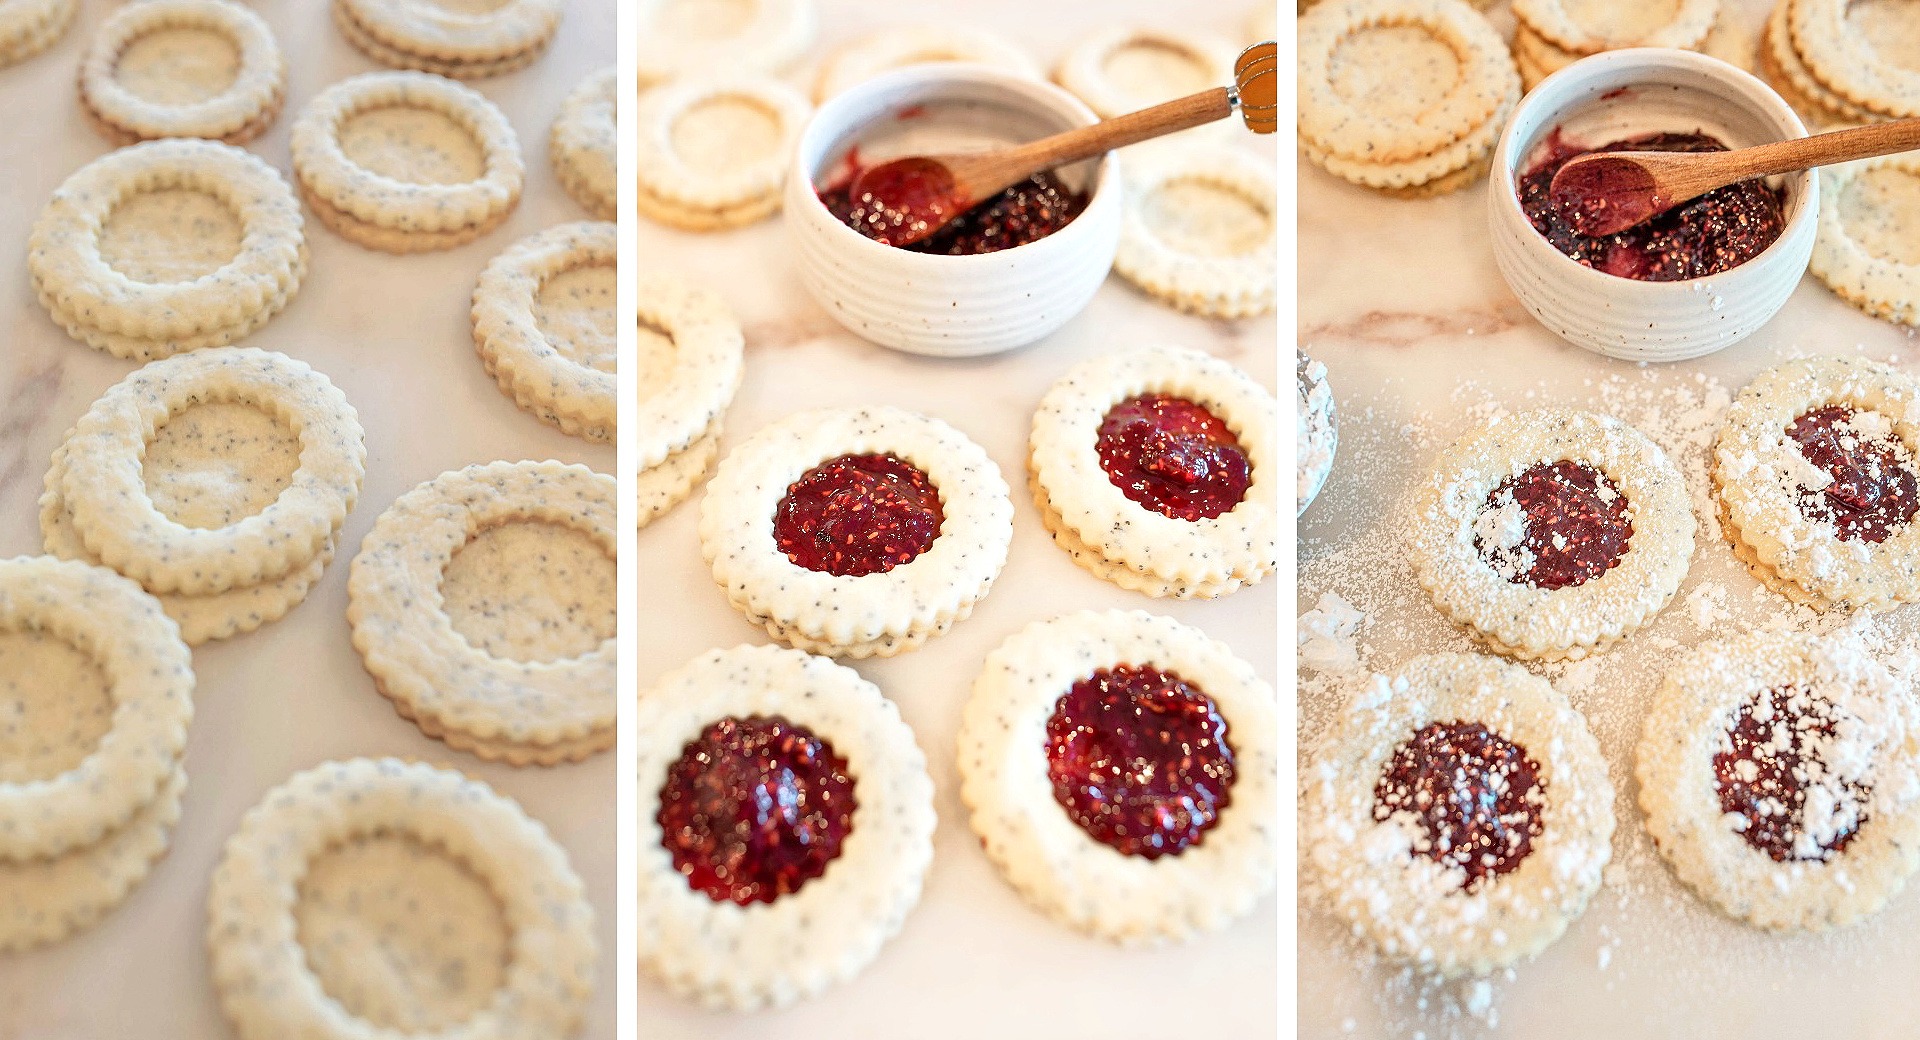 lemon poppy seed, lemon linzer cookies, shortbread cookies, vegan, dairy-free, lemon shortbread cookies, baking